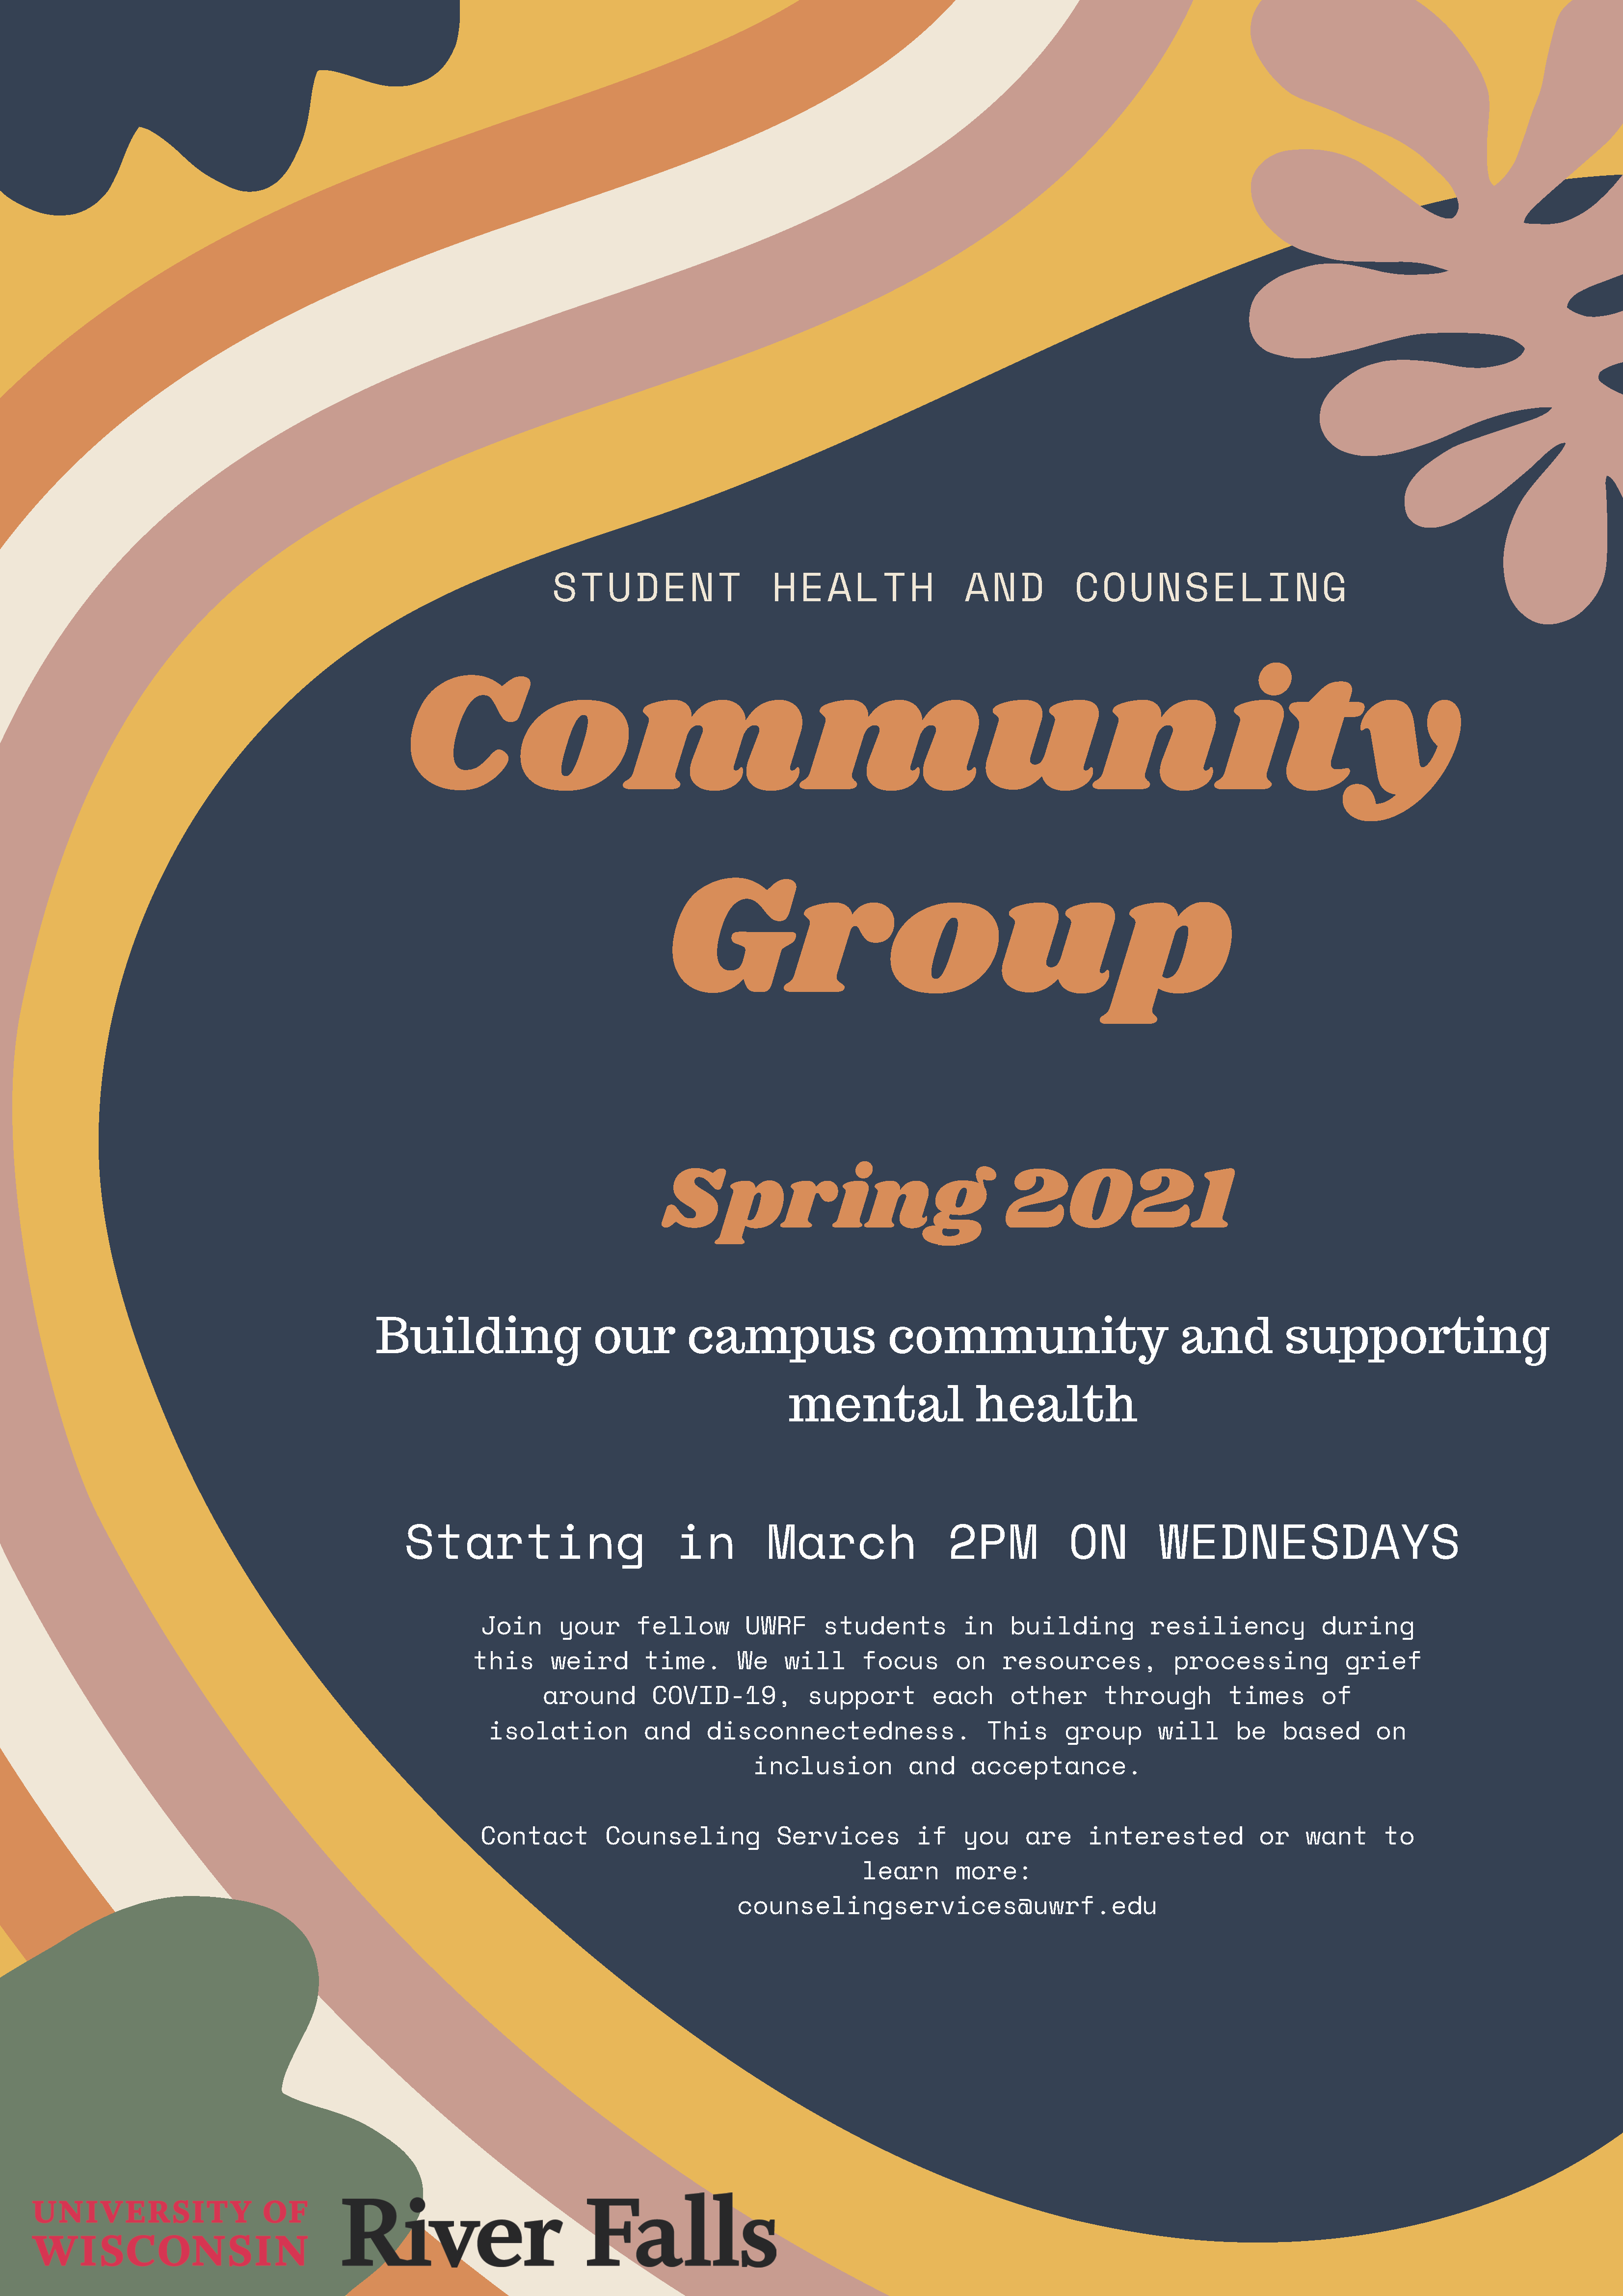 community group spring 2021-2